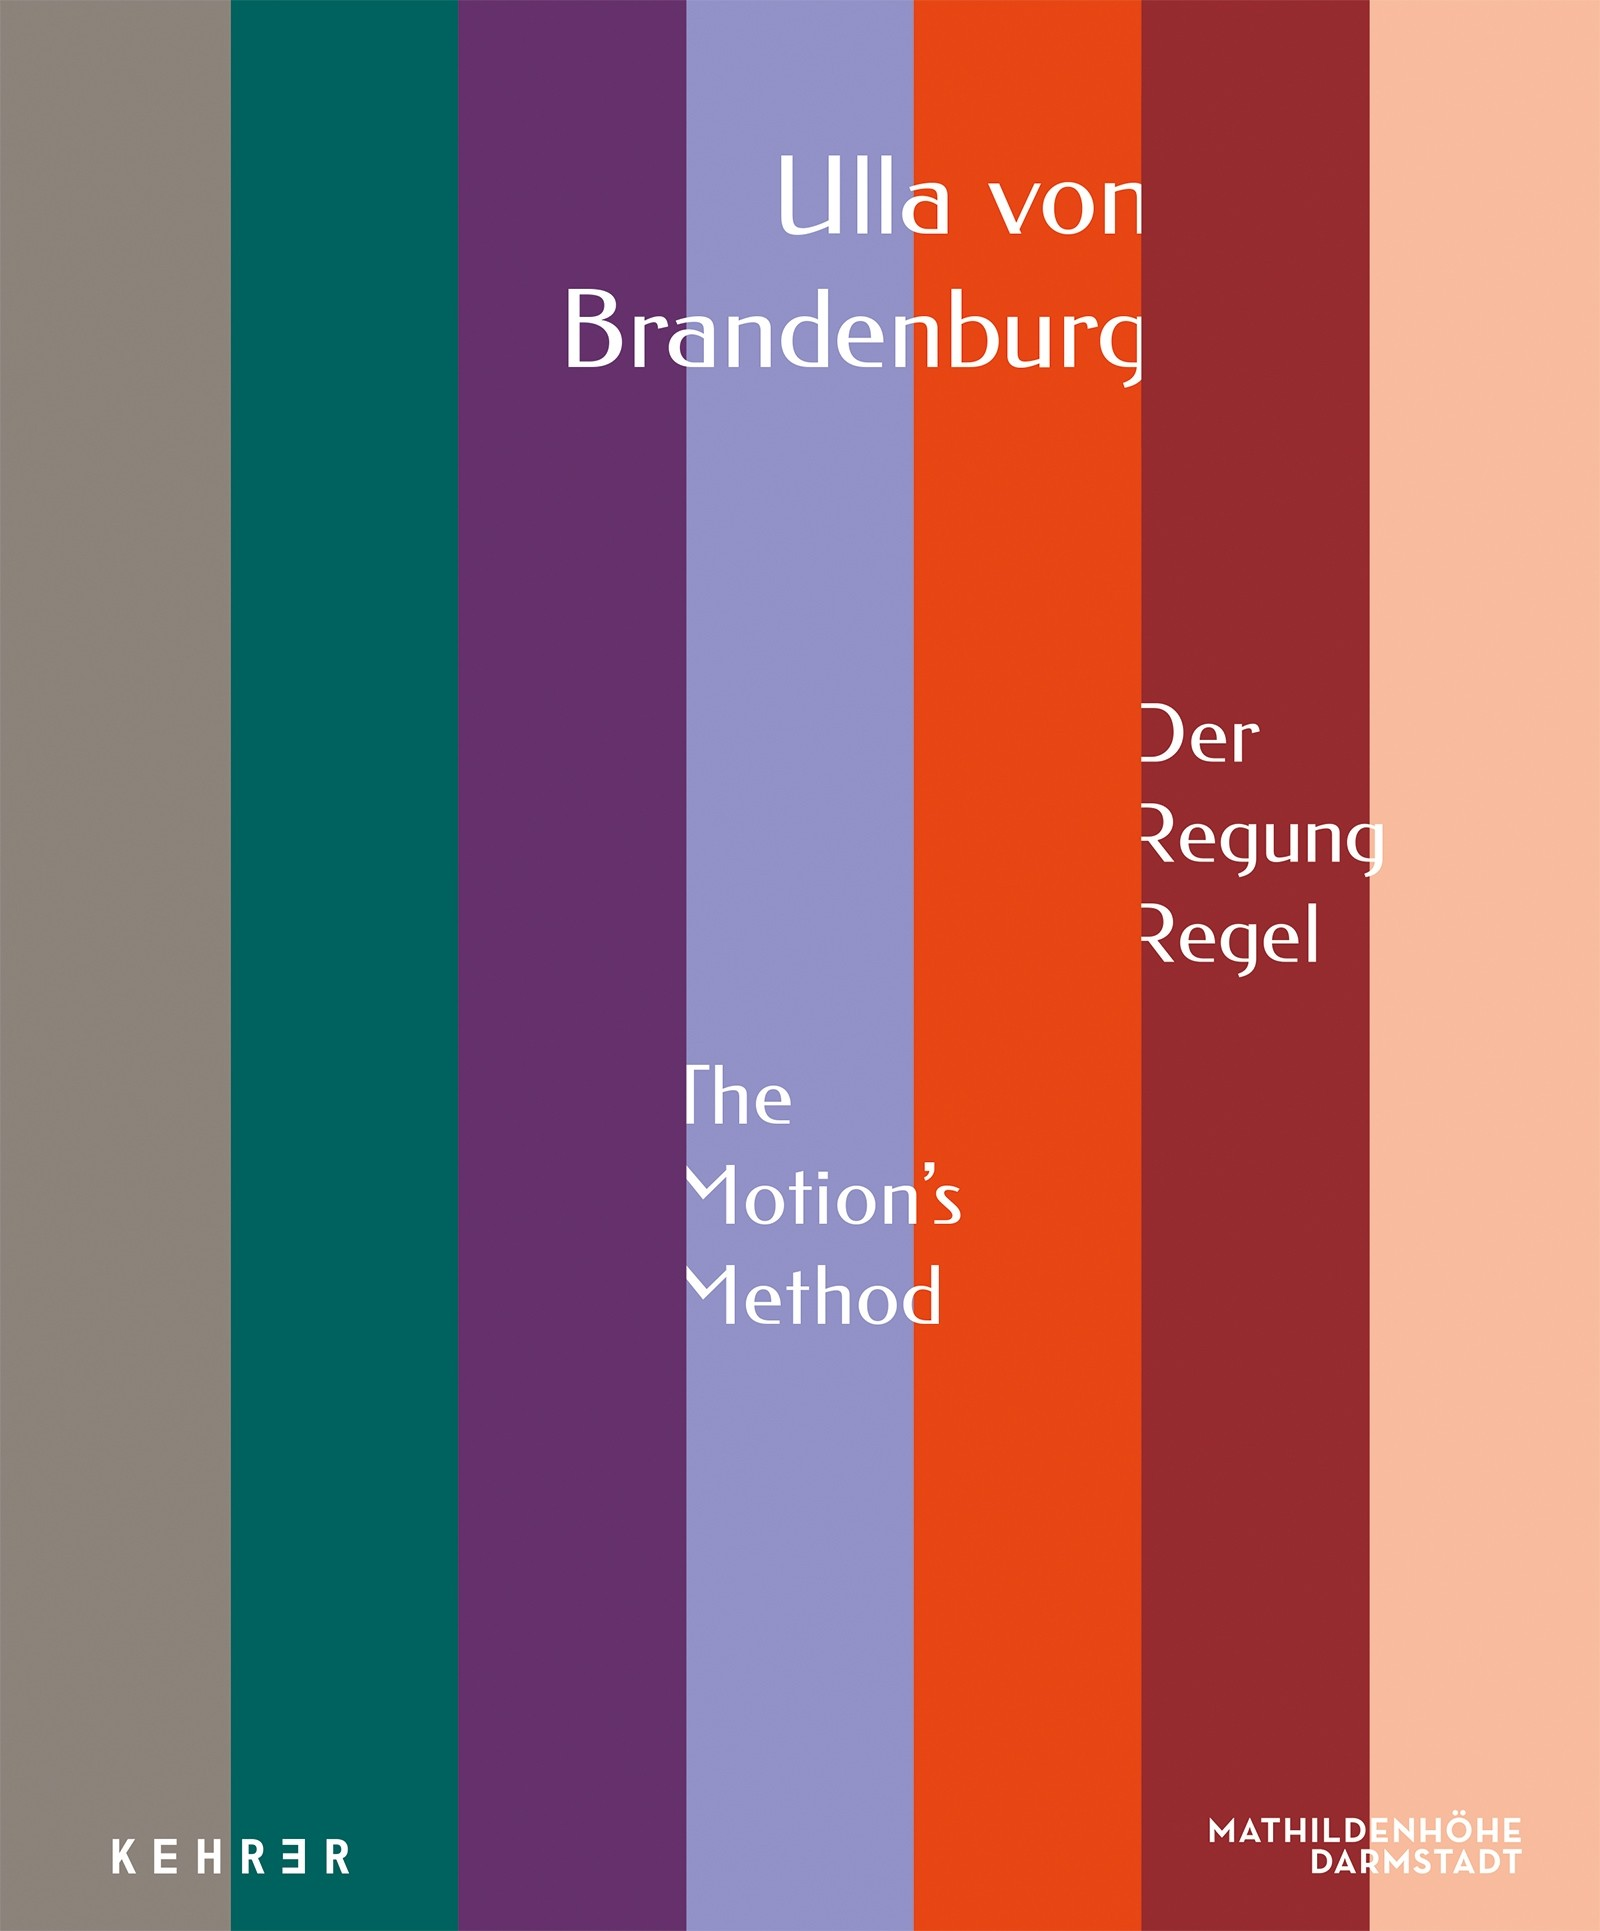 Ulla von Brandenburg Der Regung Regel / The Motion's Method